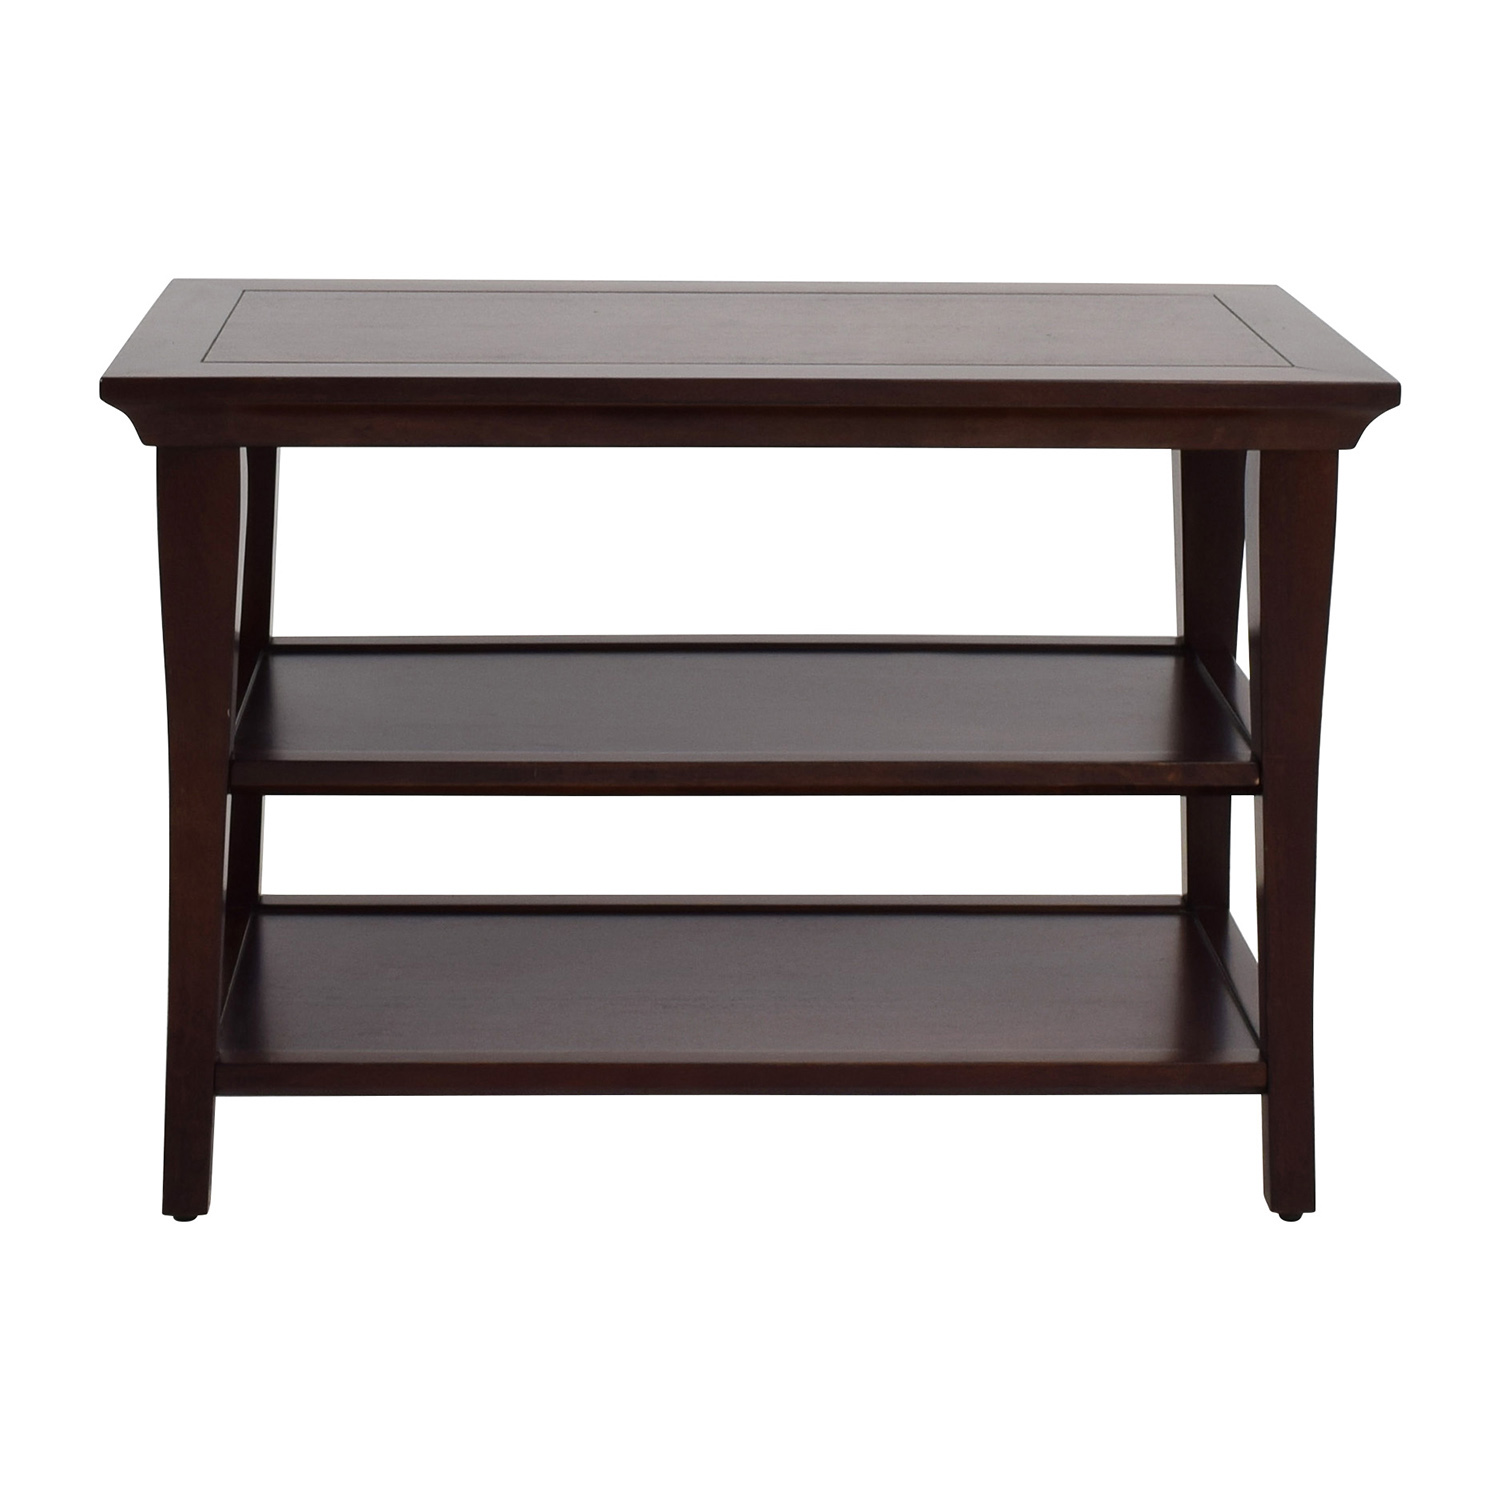 Pottery Barn Wood Table with Shelves / Accent Tables